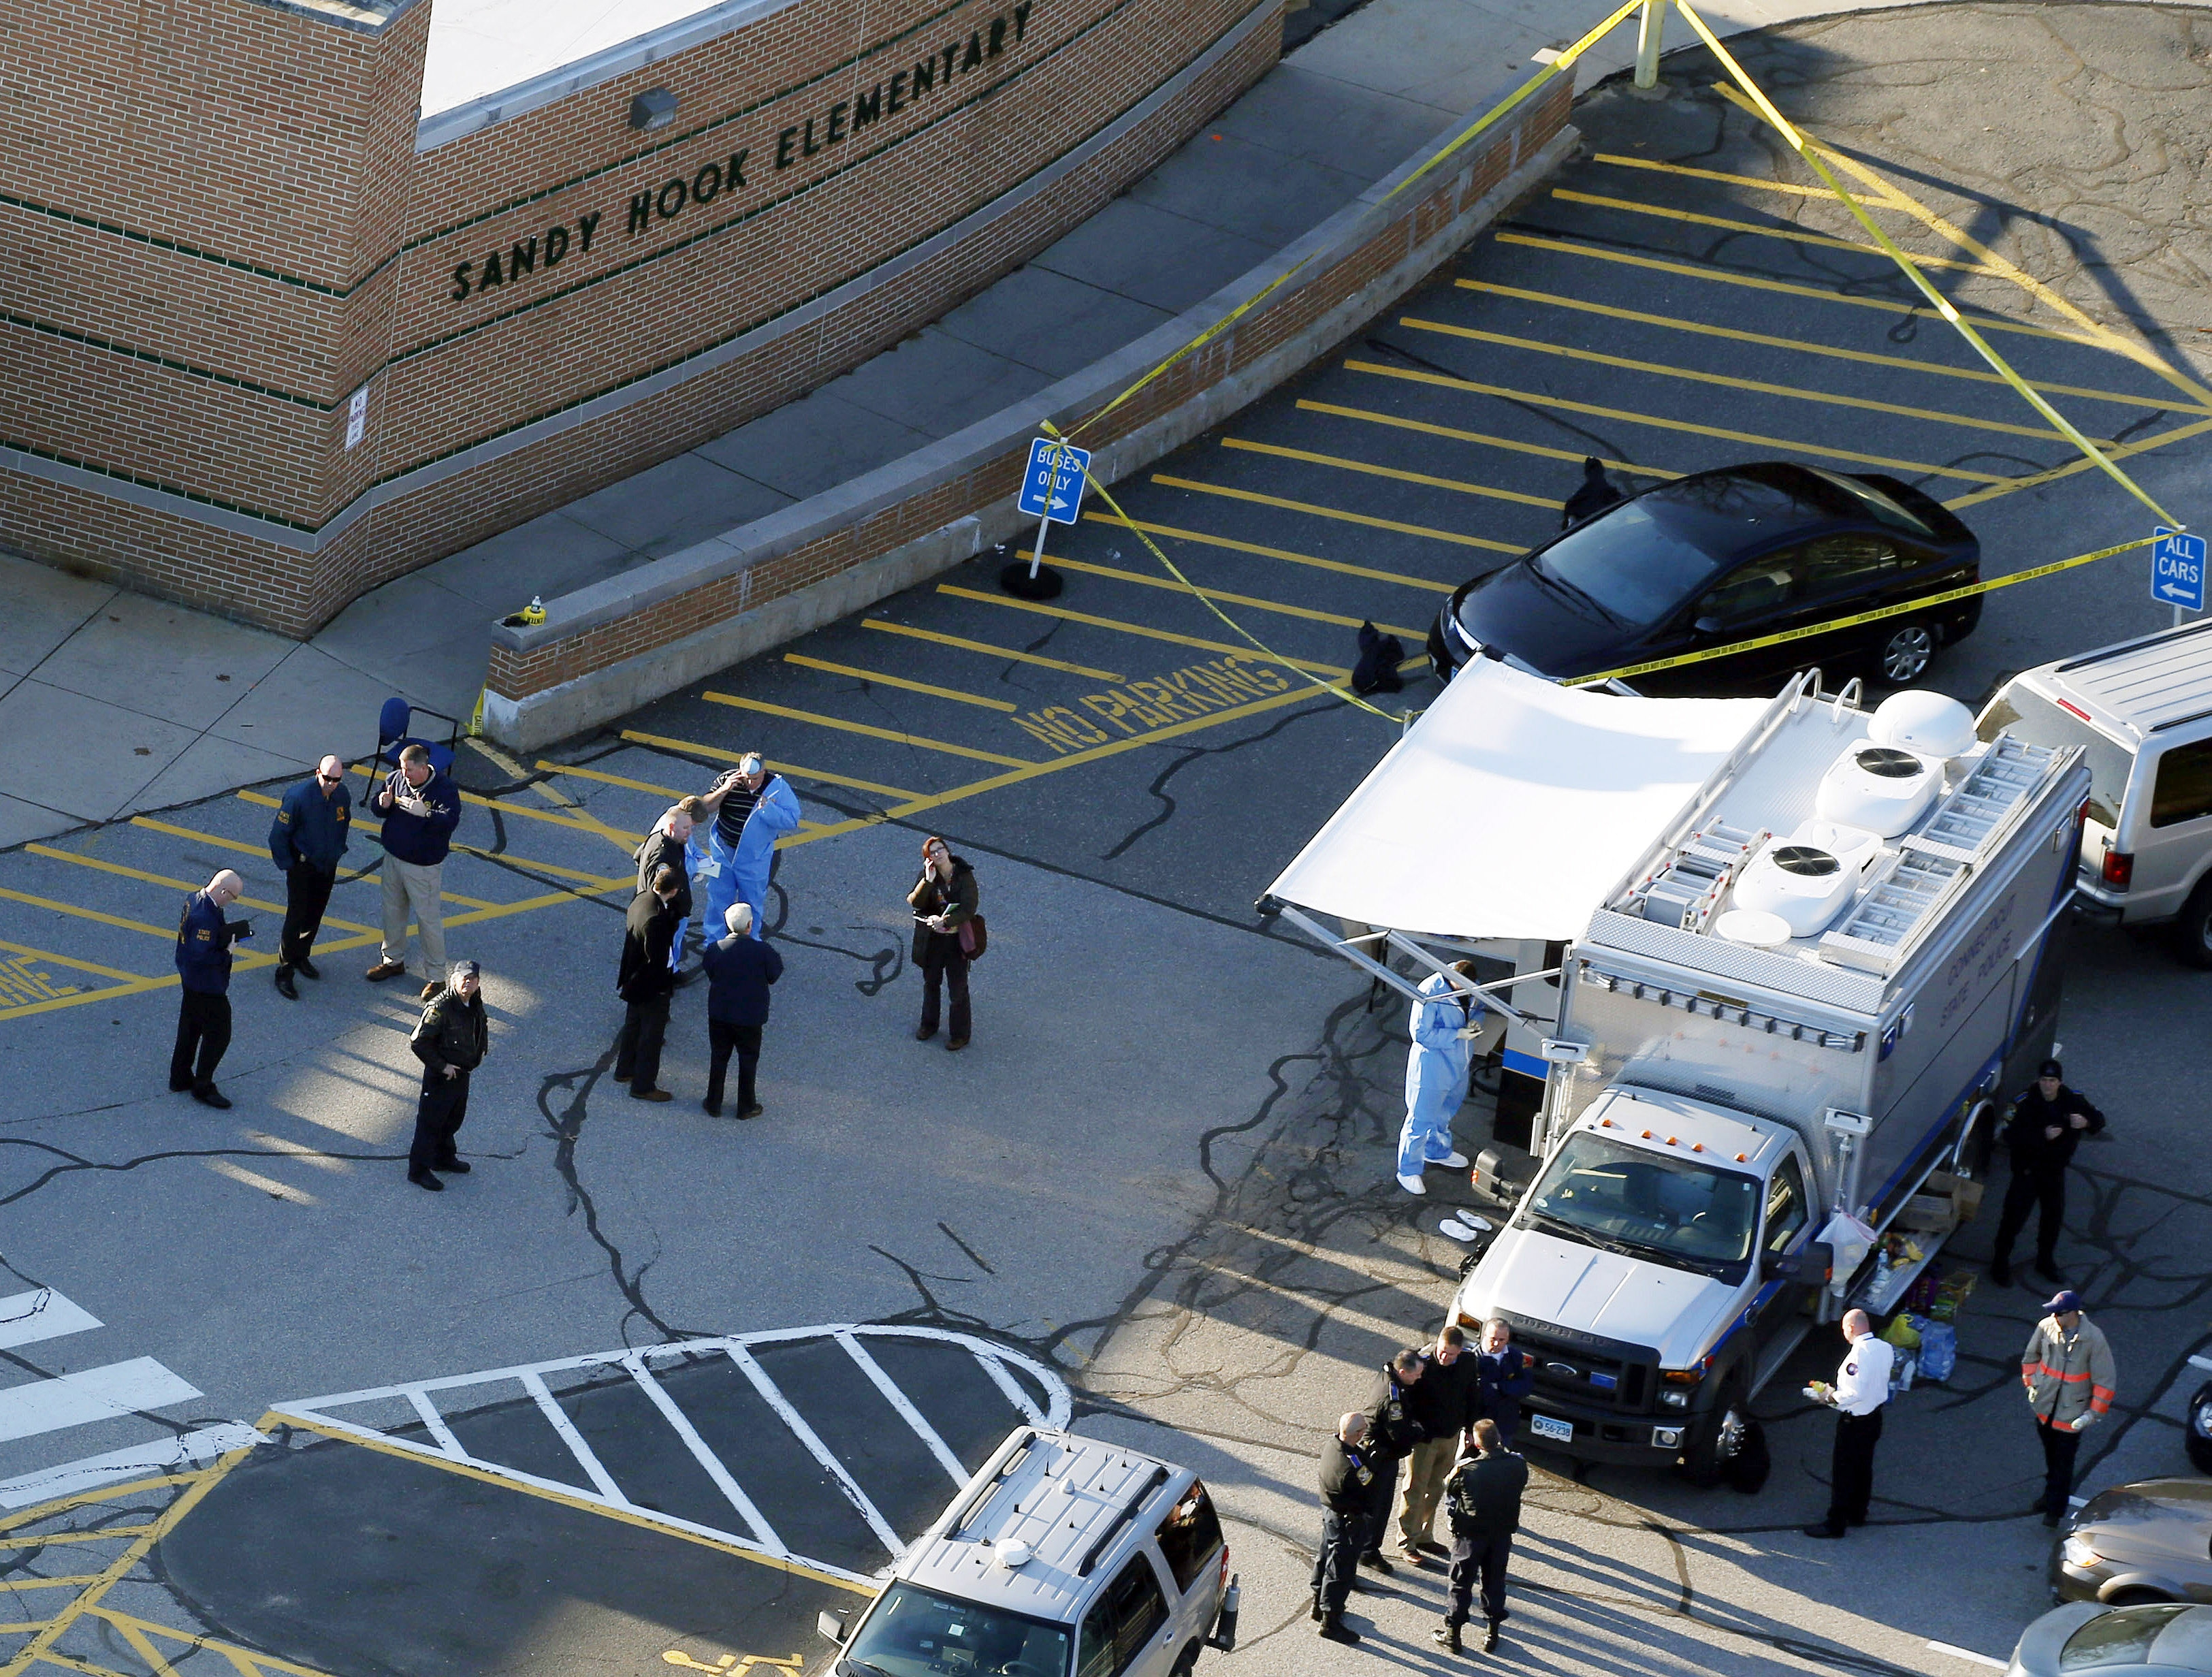 Under new guidelines, paramedics responding to mass attacks such as the one at Sandy Hook Elementary School last year, above, should move onto the scene more quickly than they've been advised to in the past.